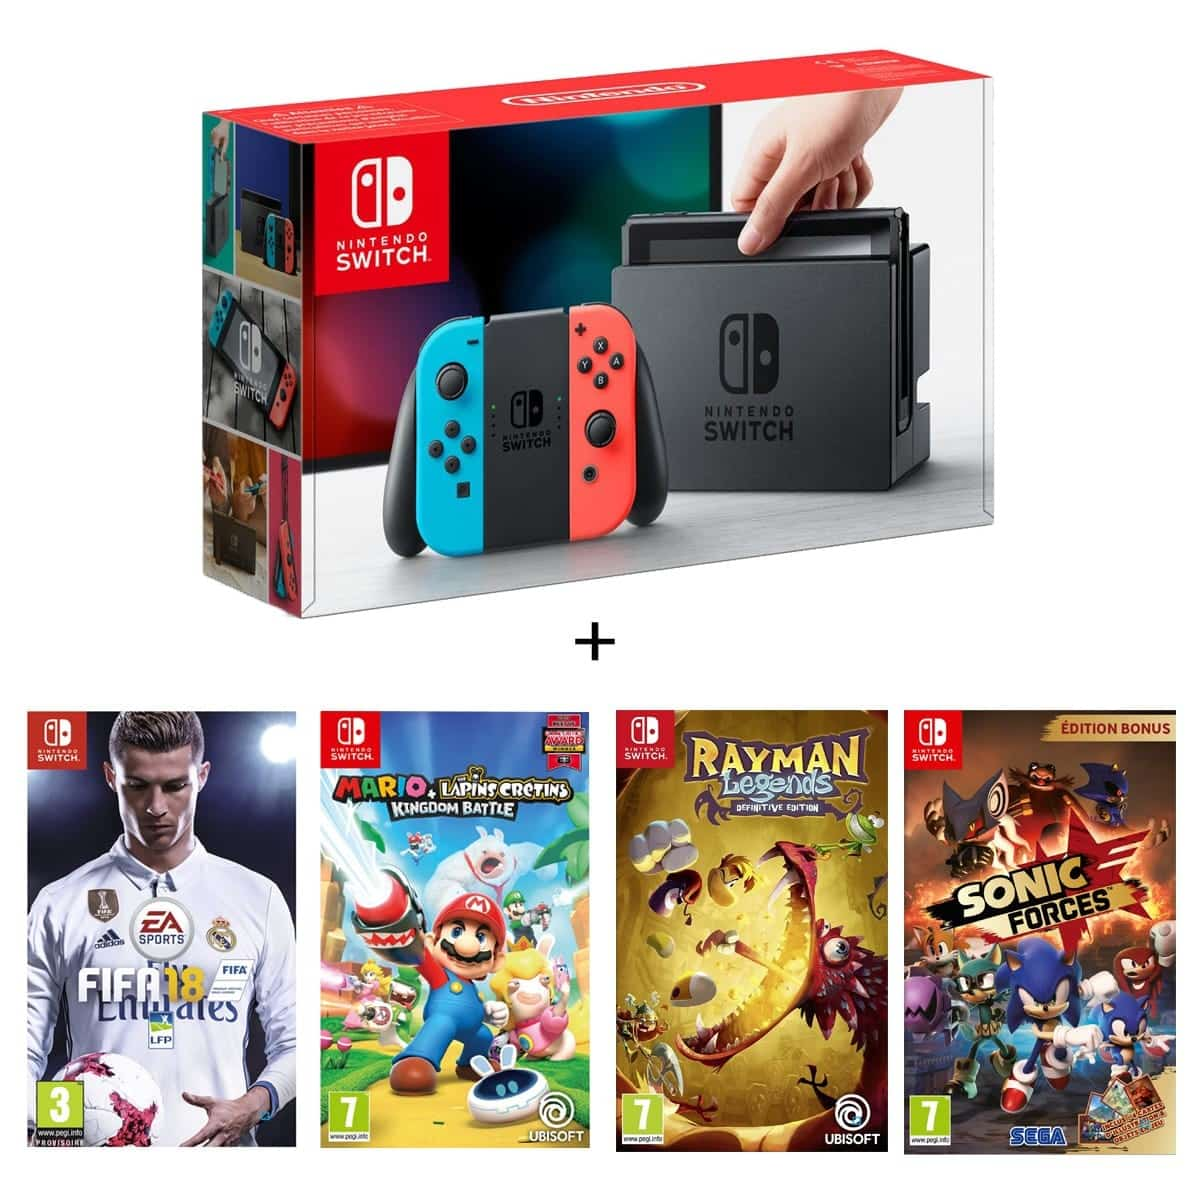 console nintendo switch fifa 18 mario les lapins cr tins rayman legends definitive. Black Bedroom Furniture Sets. Home Design Ideas